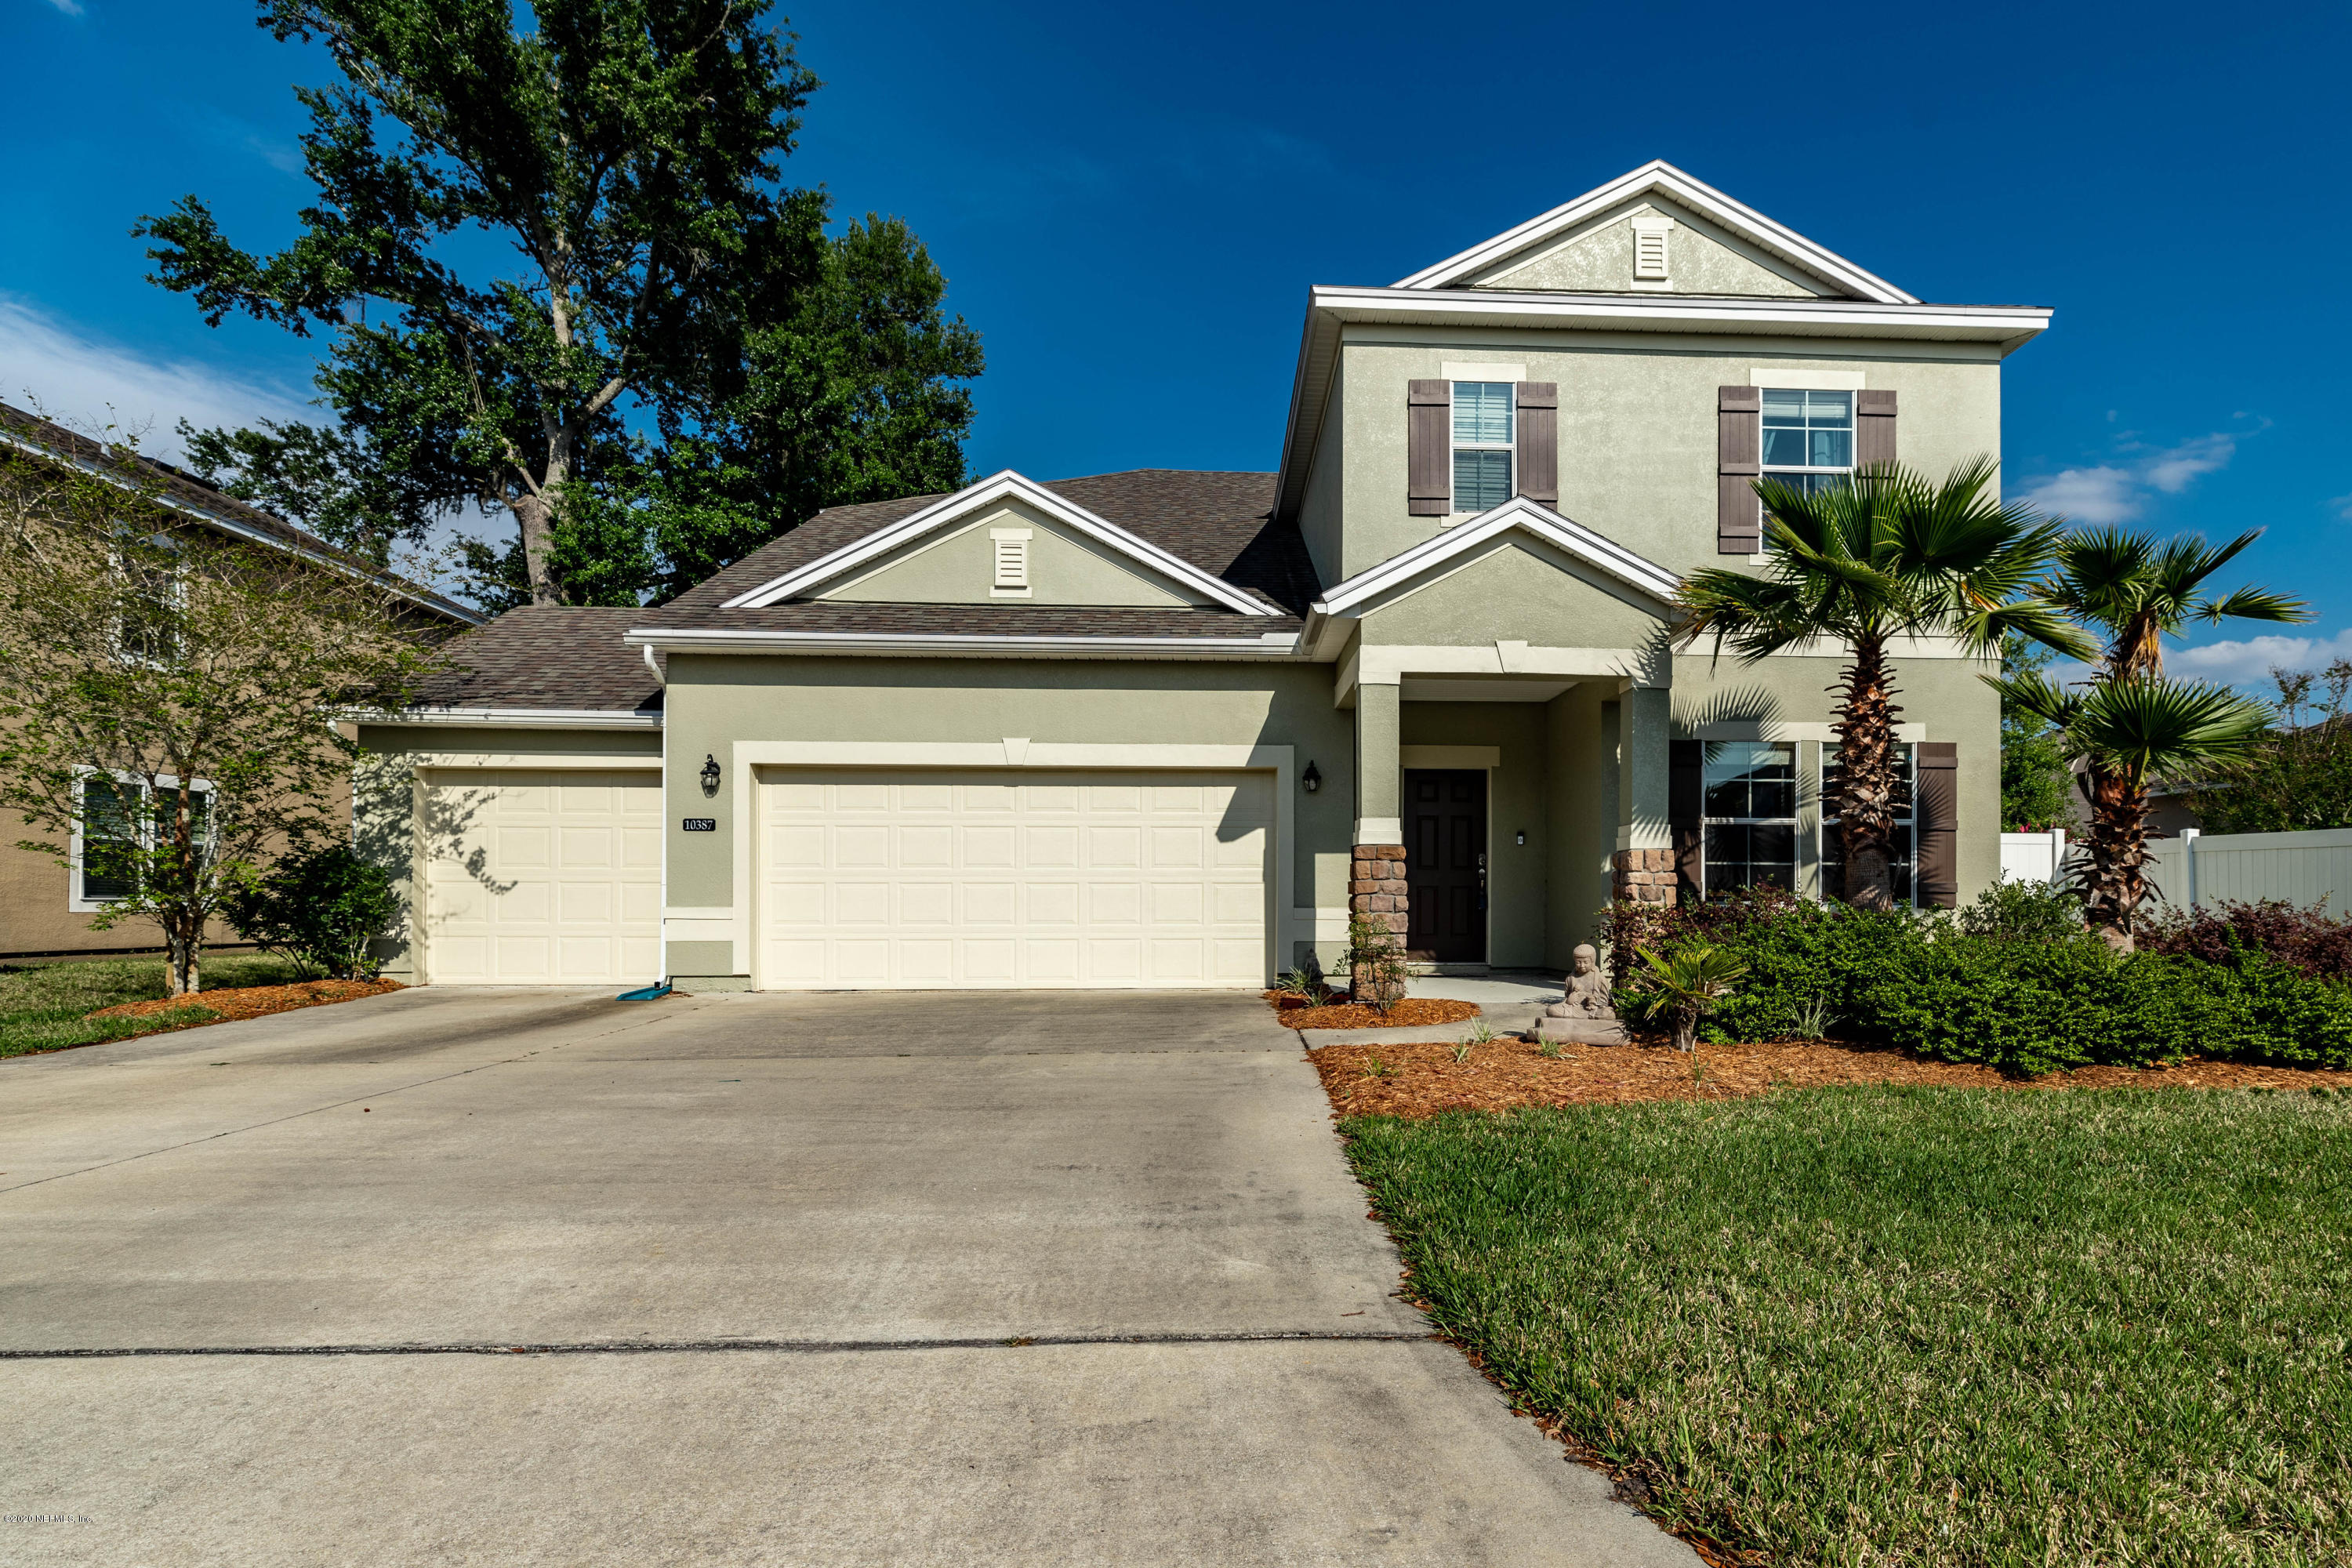 Image 2 For 10387 Addison Lakes Dr